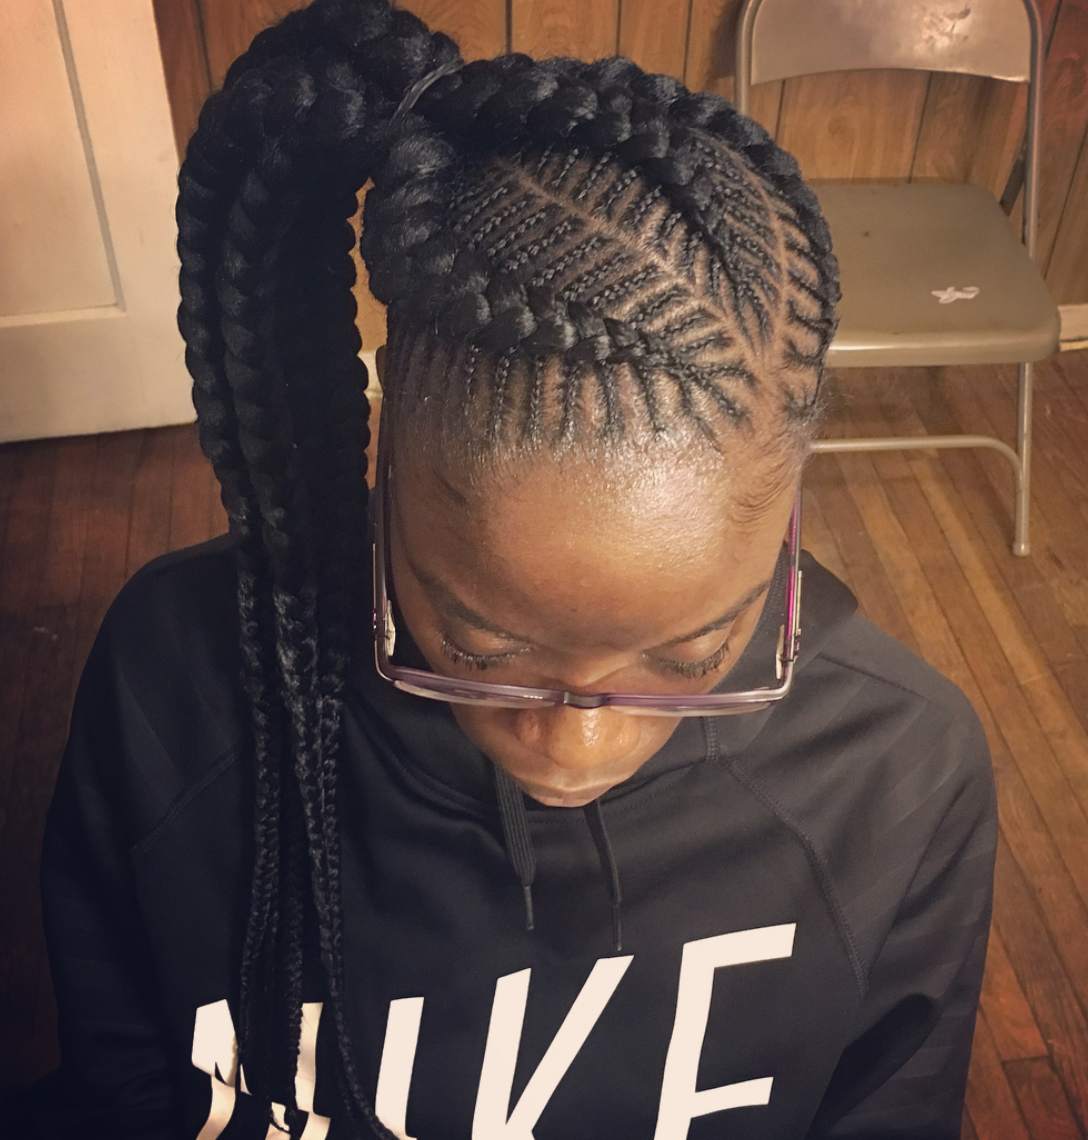 fishbone braids with side ponytail.png 1088×1140